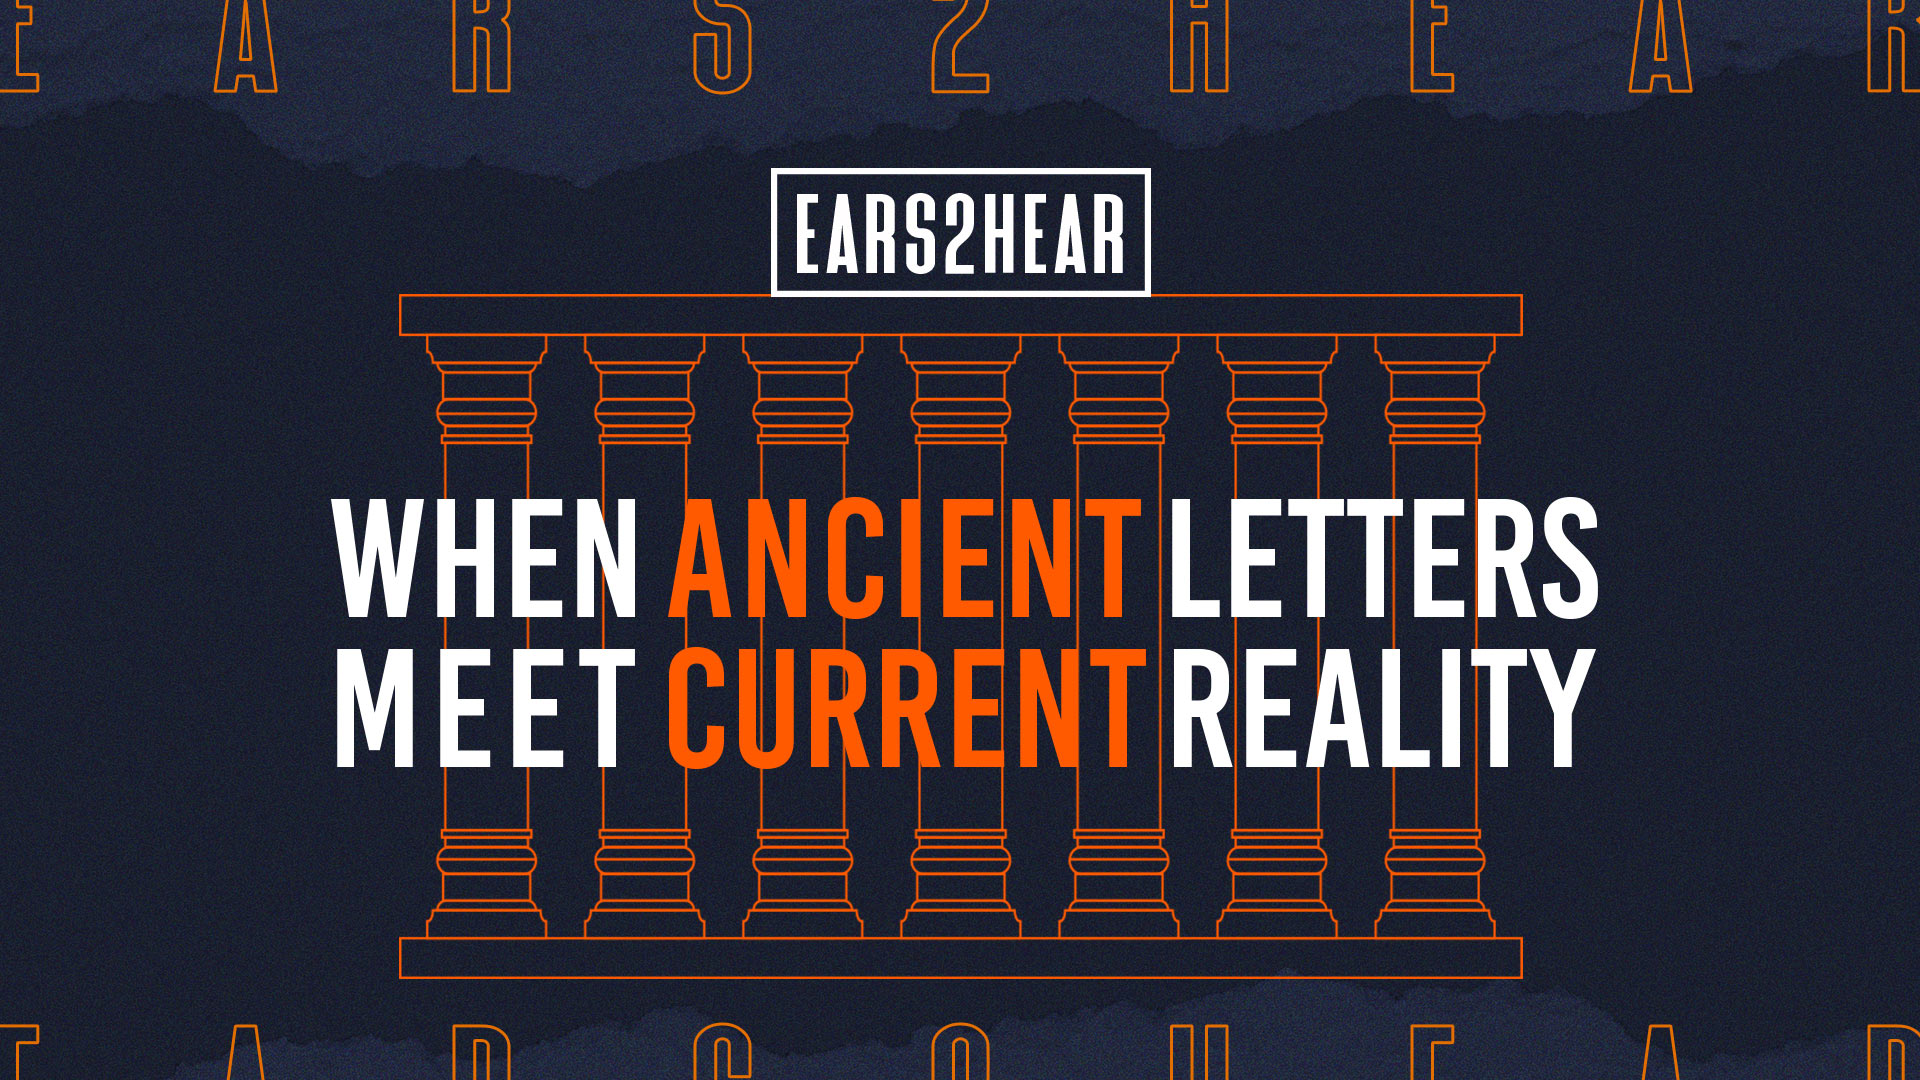 Ears2Hear: When Ancient Letters Meet Current Reality